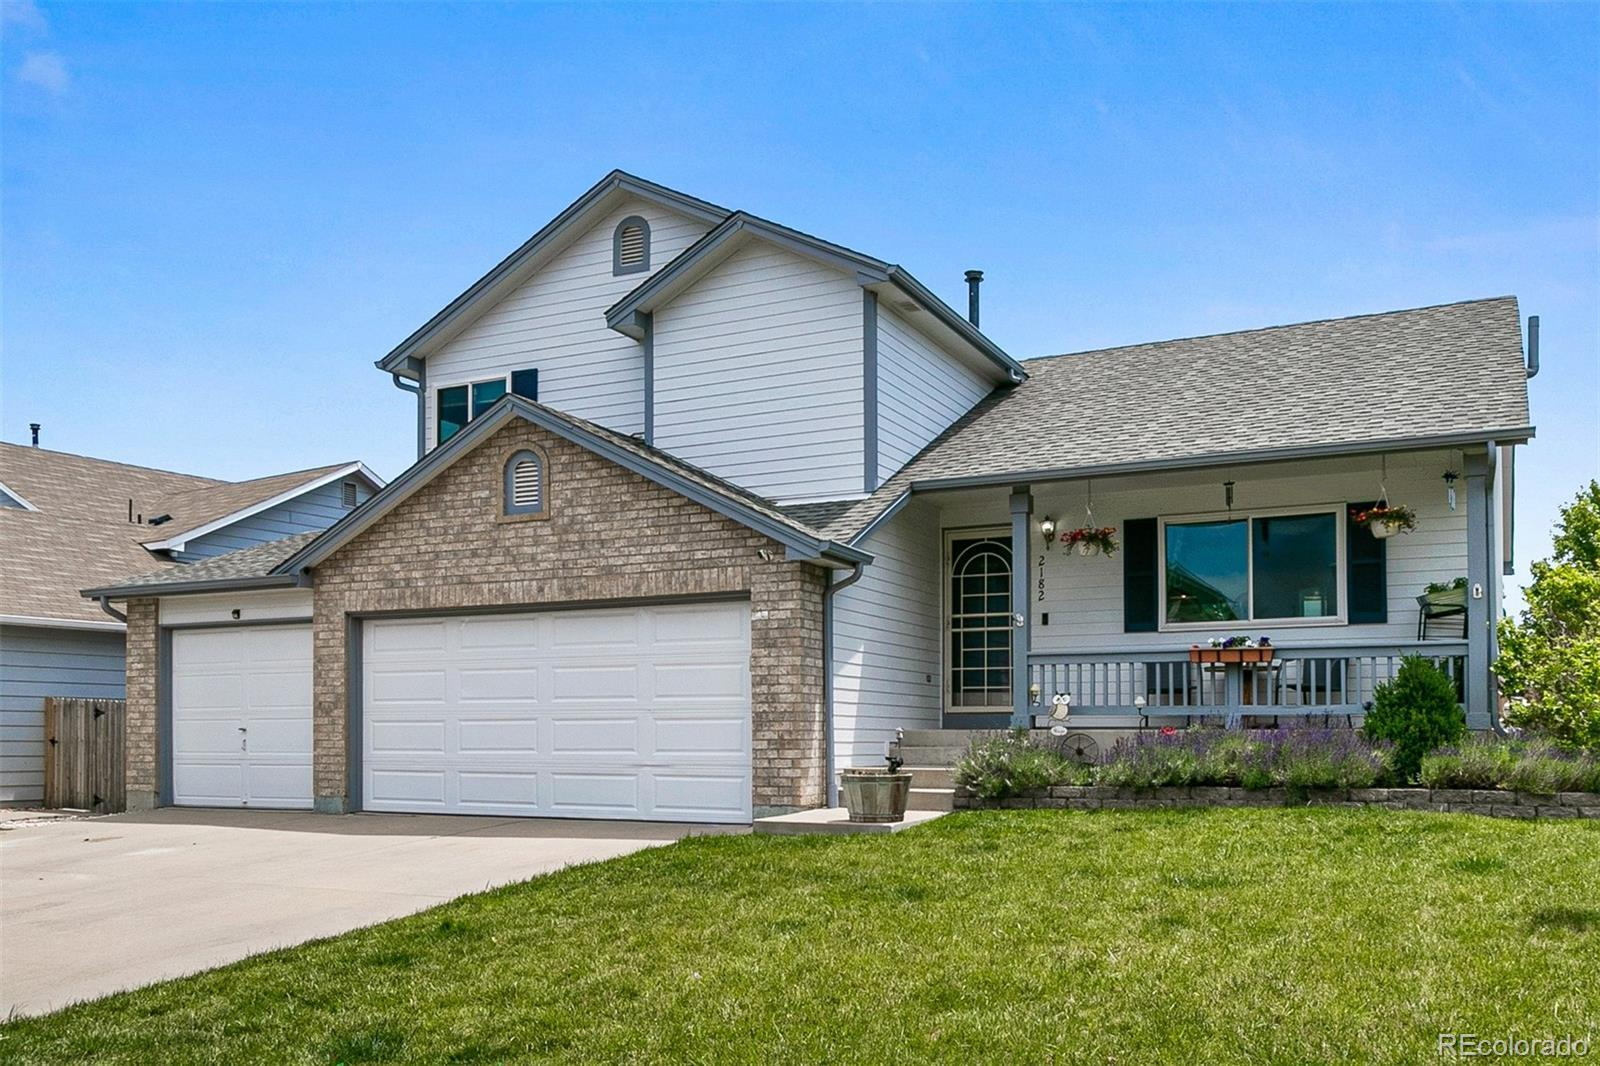 2182 W 135th Place, Westminster, CO 80234 - #: 5344345